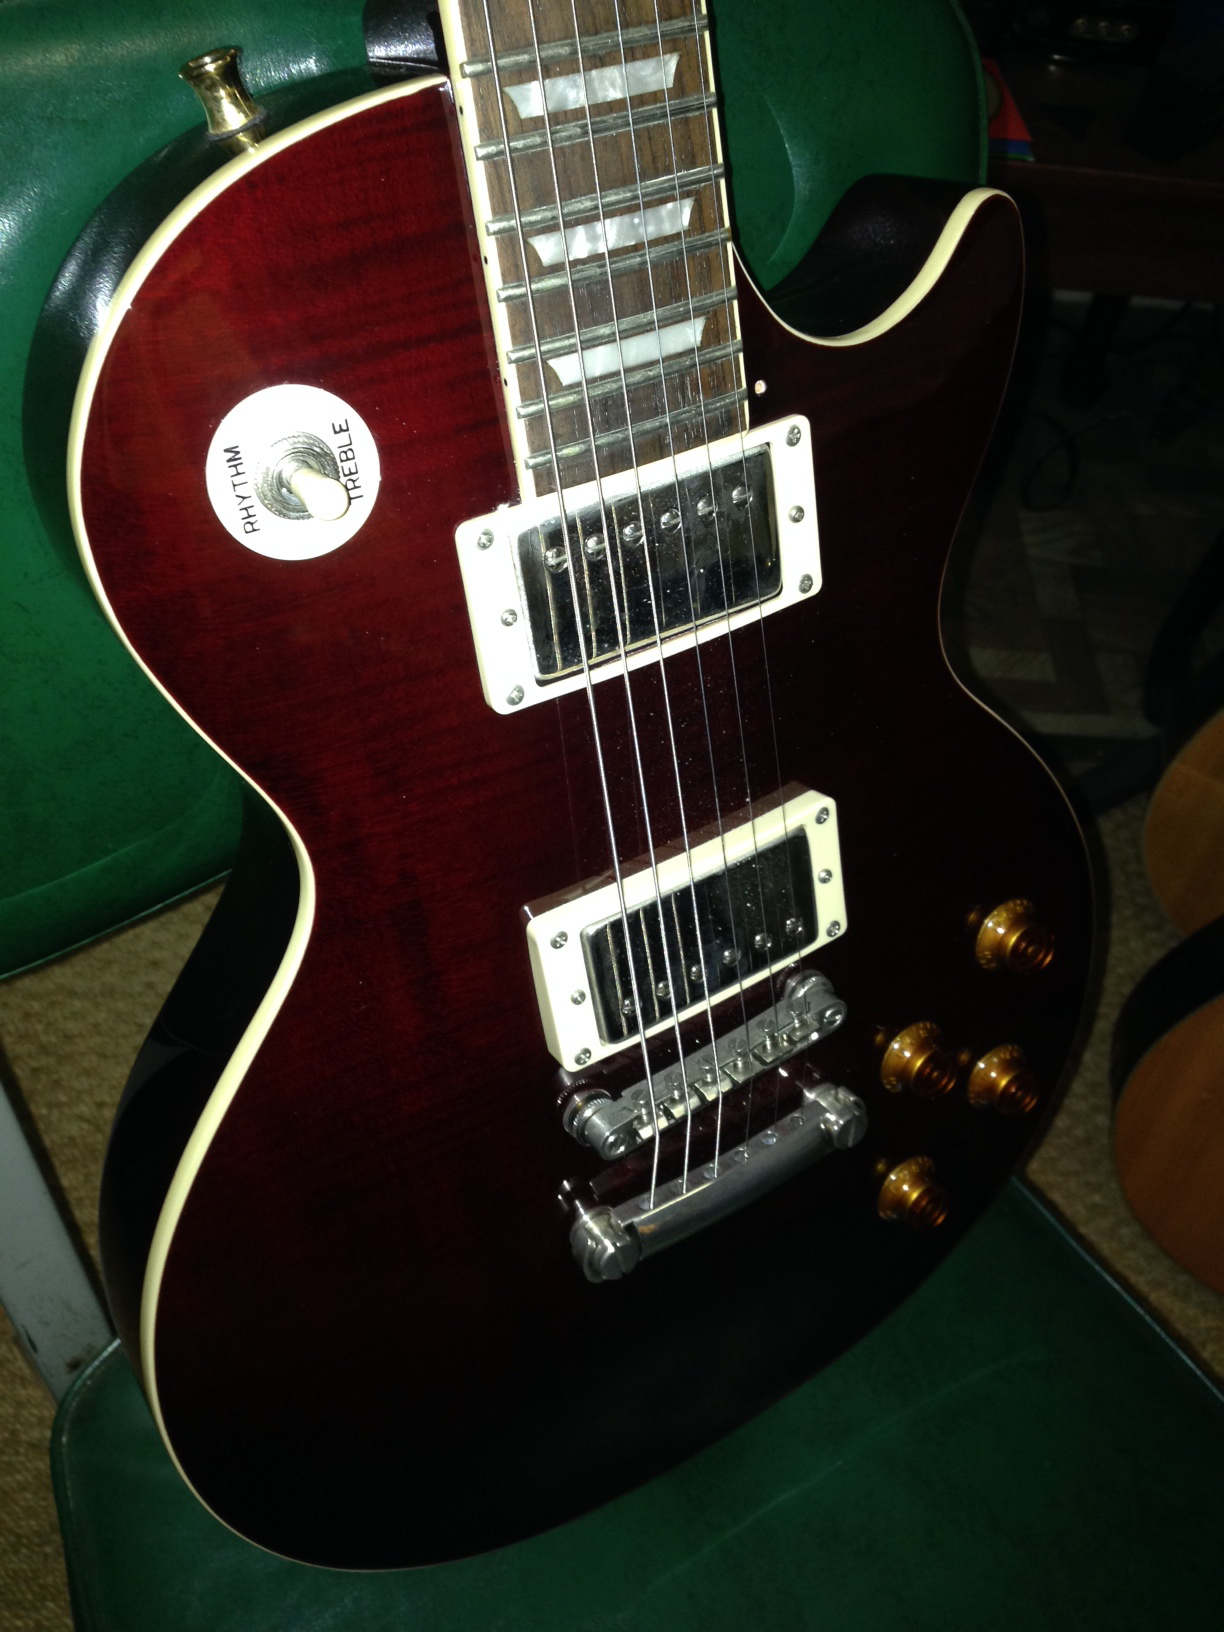 EPIPHONE Les Paul Junior bolt neck Electric Guitar. This could use some  detailed cleaning but in overall nice w/electronics sounding great &  working well.